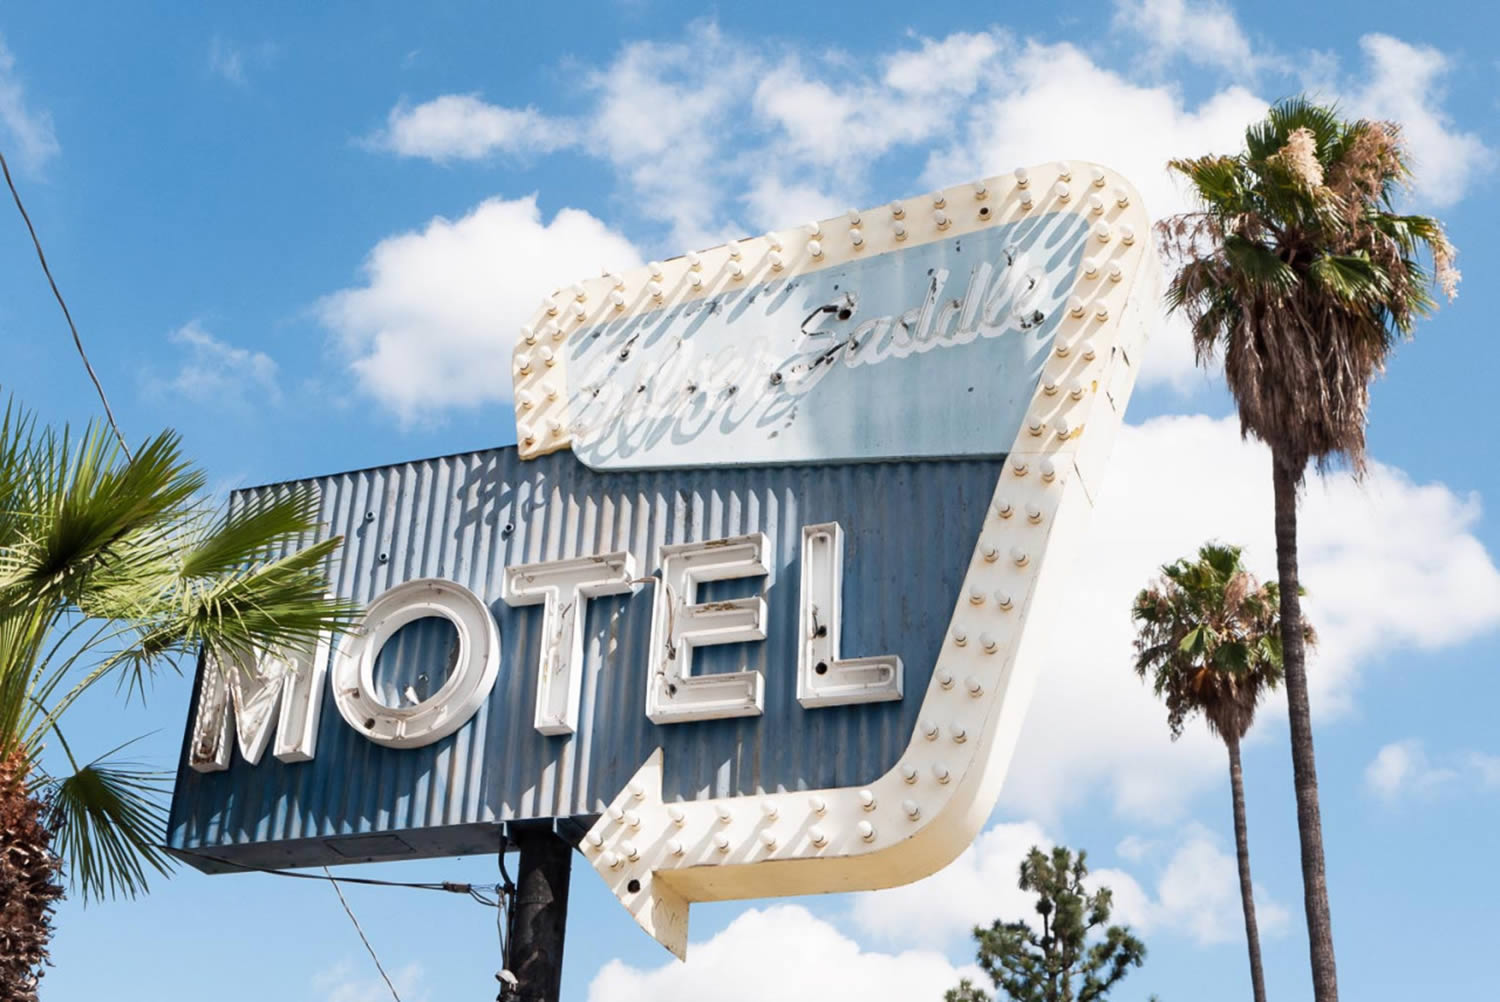 motel sign, california